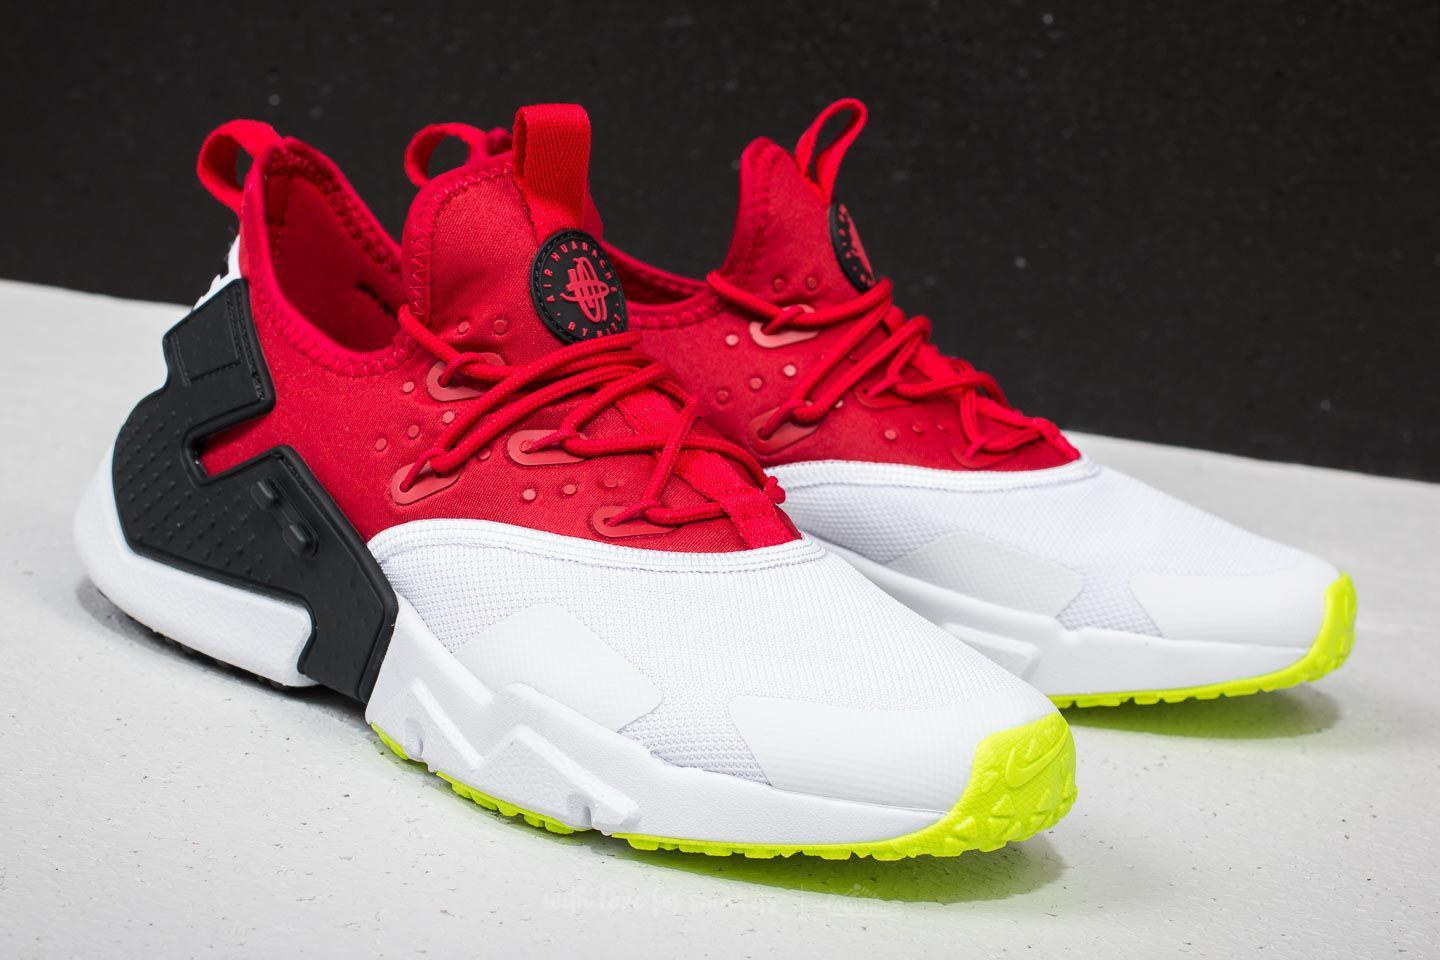 cf6ff7d319ea7 ... sweden lyst nike air huarache drift gym red white black volt in red for  men a611c